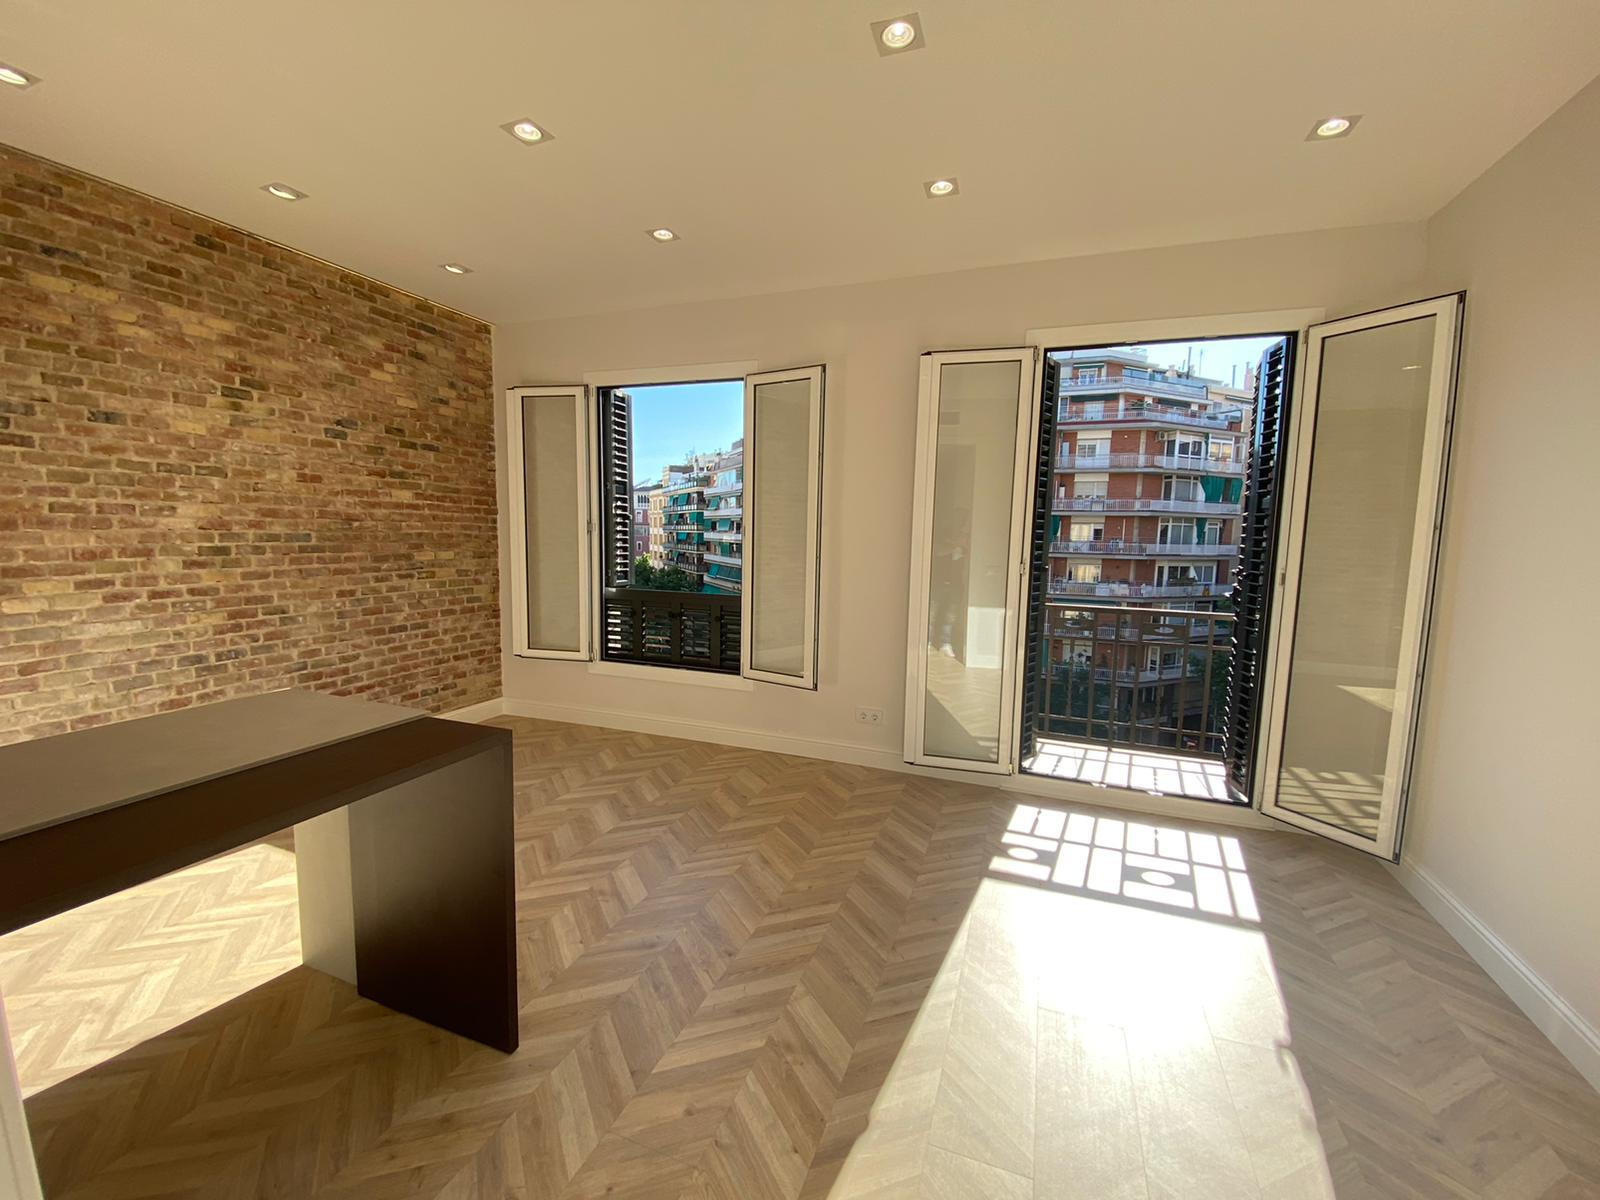 241064 Flat for sale in Gràcia, Camp Grassot and Gràcia Nova 2